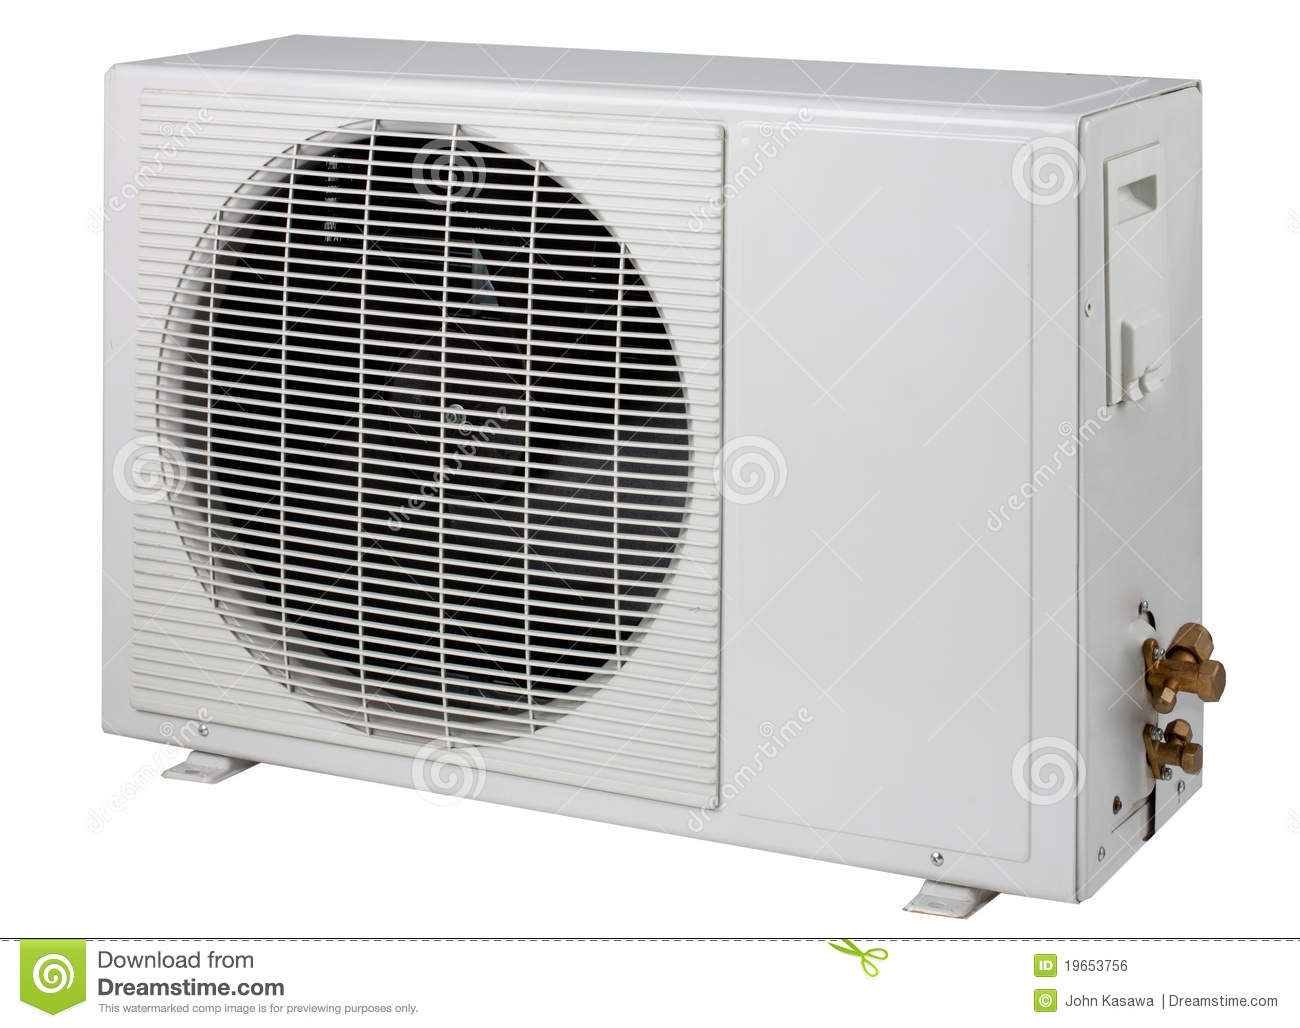 #84A625 Air Conditioner Condensing Cooling Systems Unit Is Royalty  Best 2113 Condenser For Ac Unit photos with 1300x1028 px on helpvideos.info - Air Conditioners, Air Coolers and more